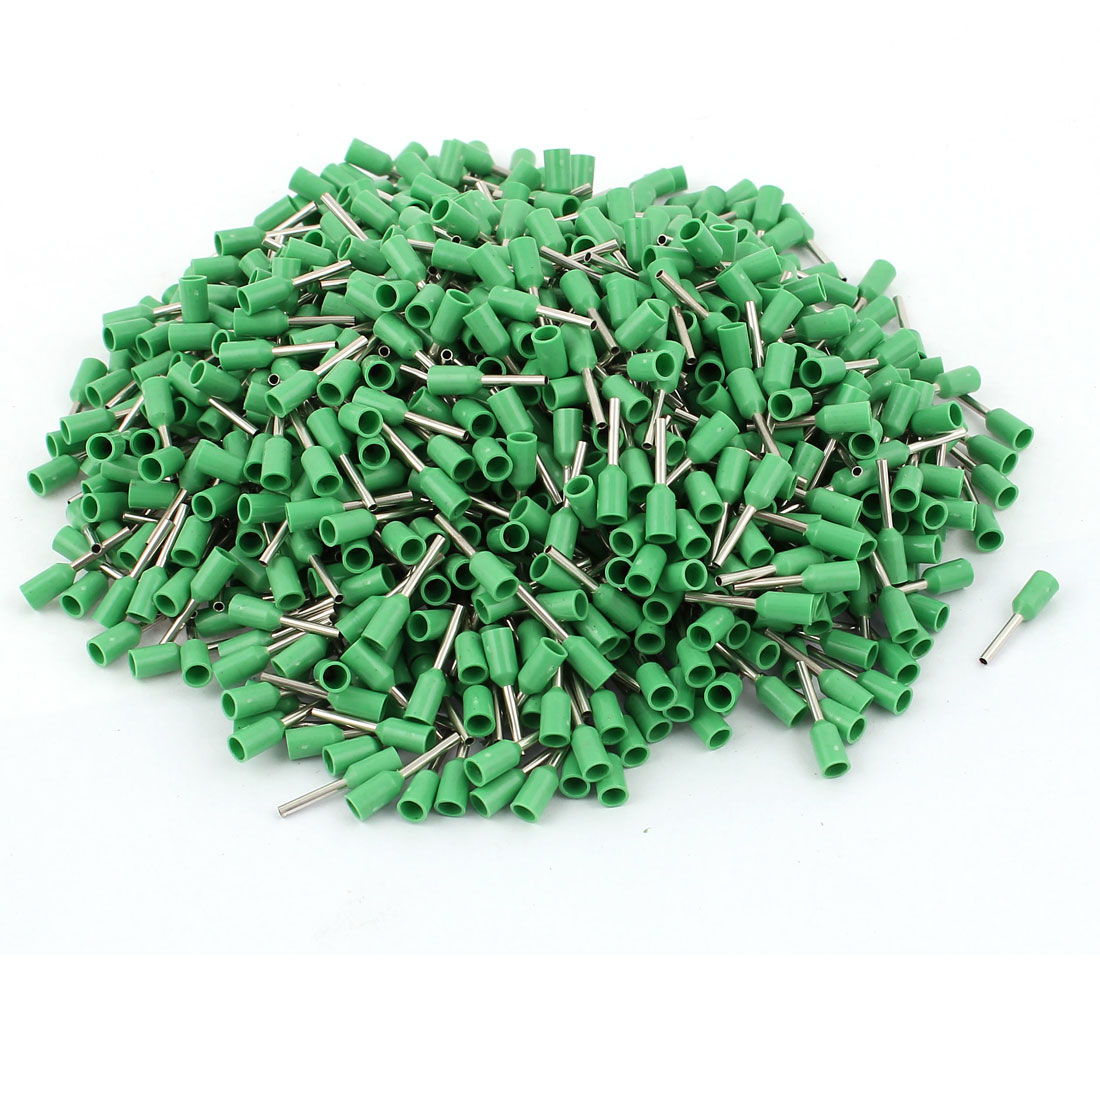 Green E0508 22 AWG Insulated Pin Crimp End Terminal Wire Ferrules 1000 Pcs